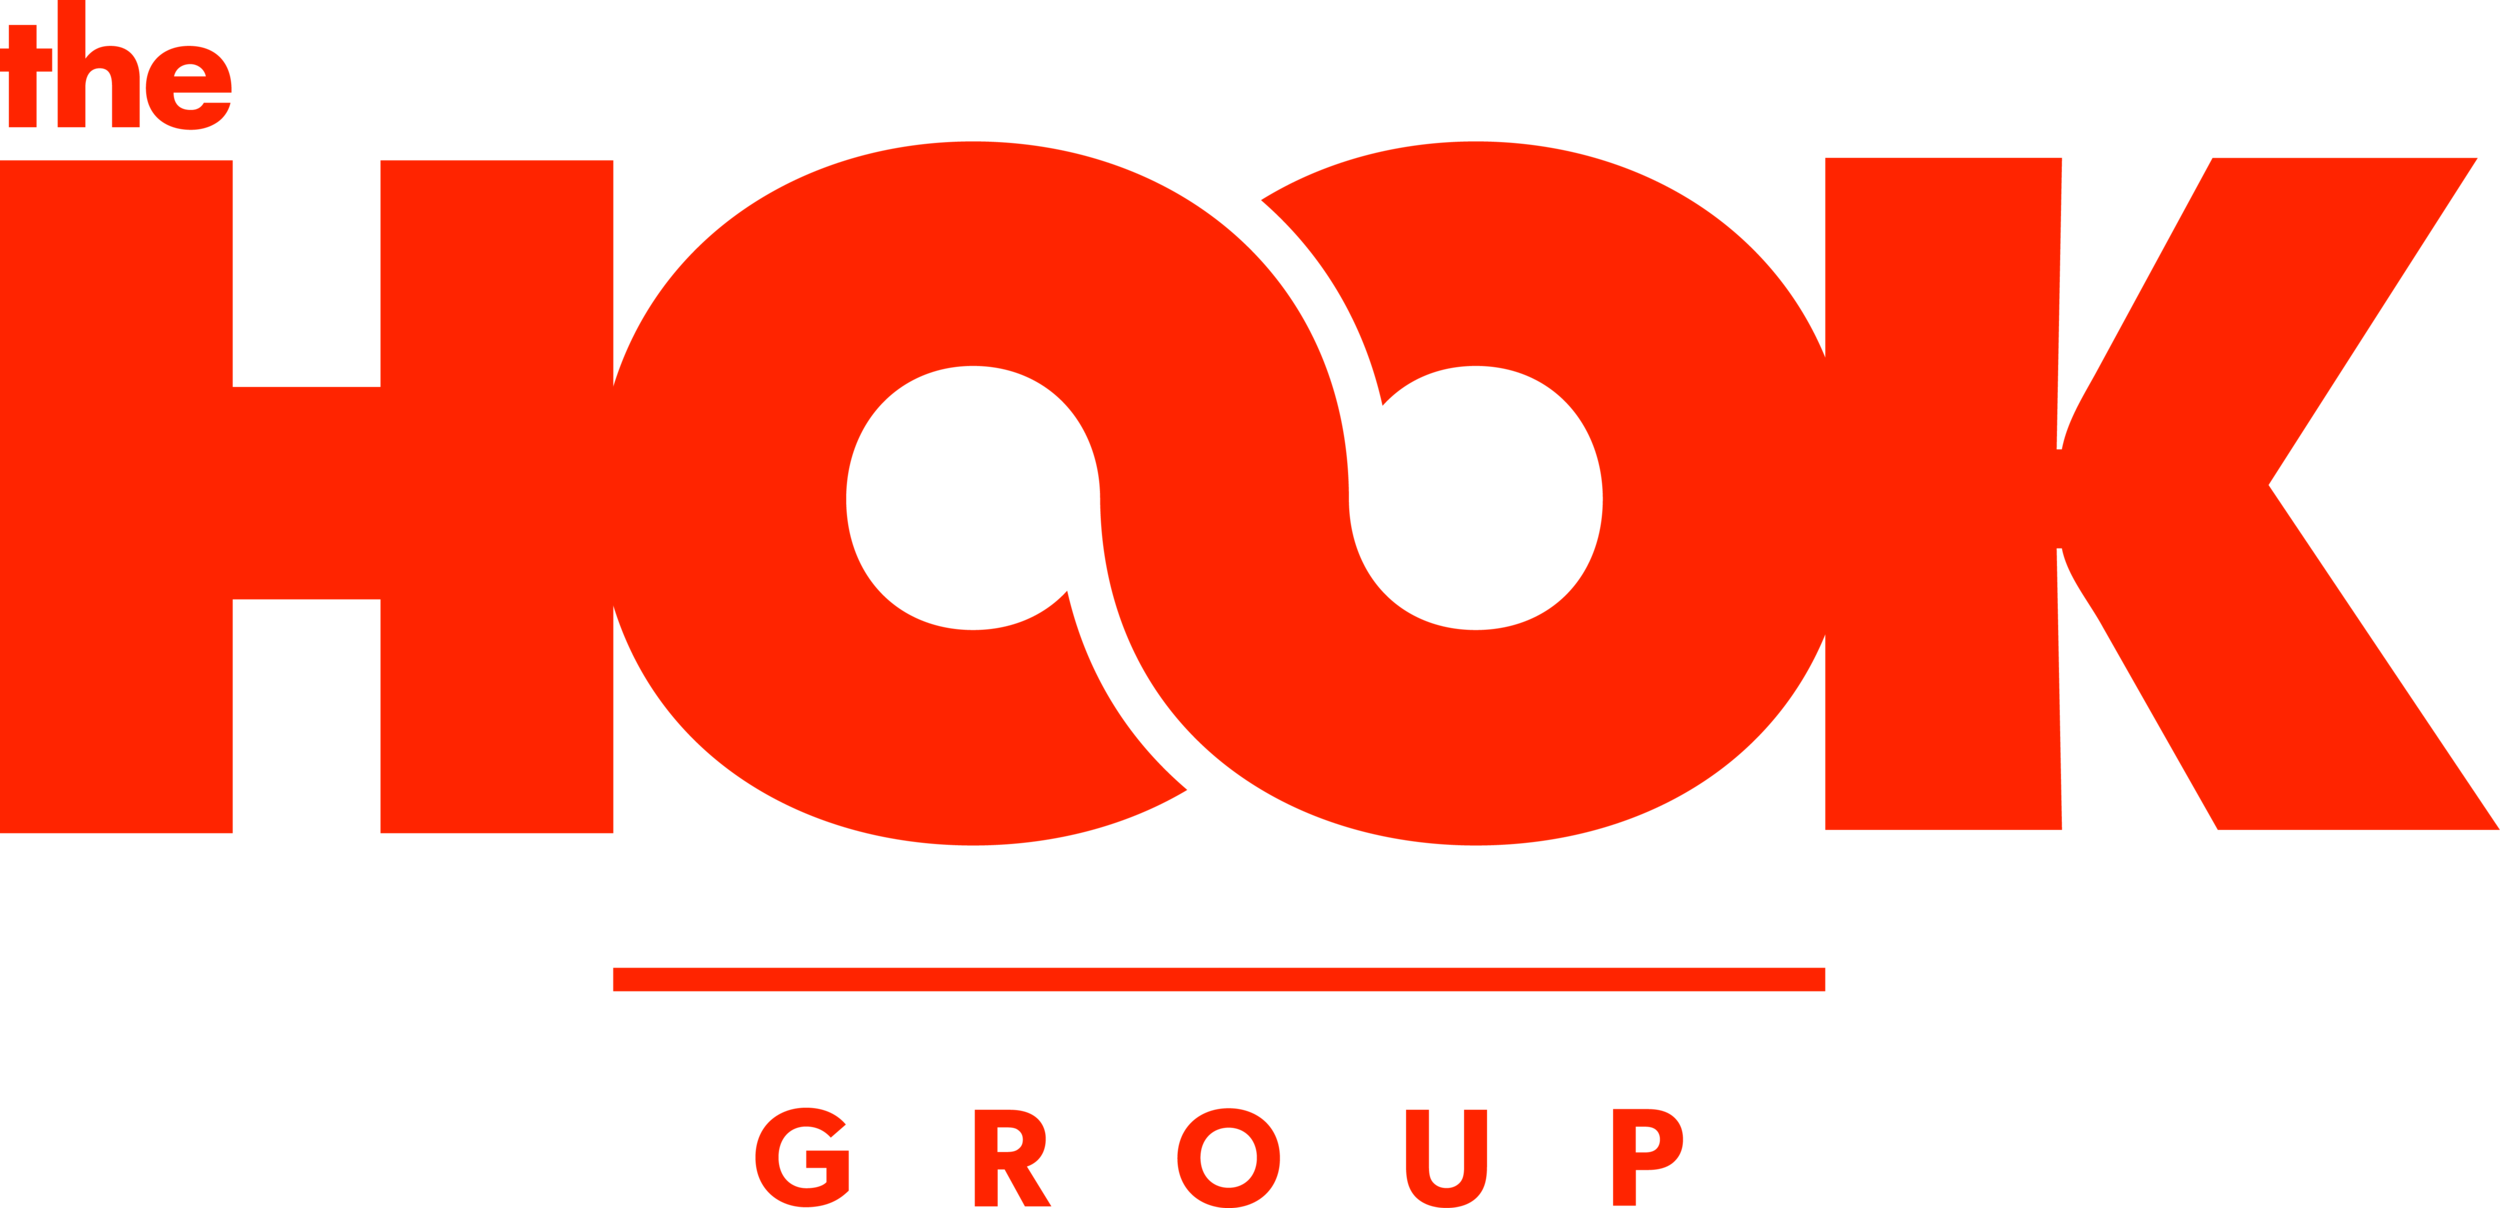 The_Hook_Group_High_Res (1).png